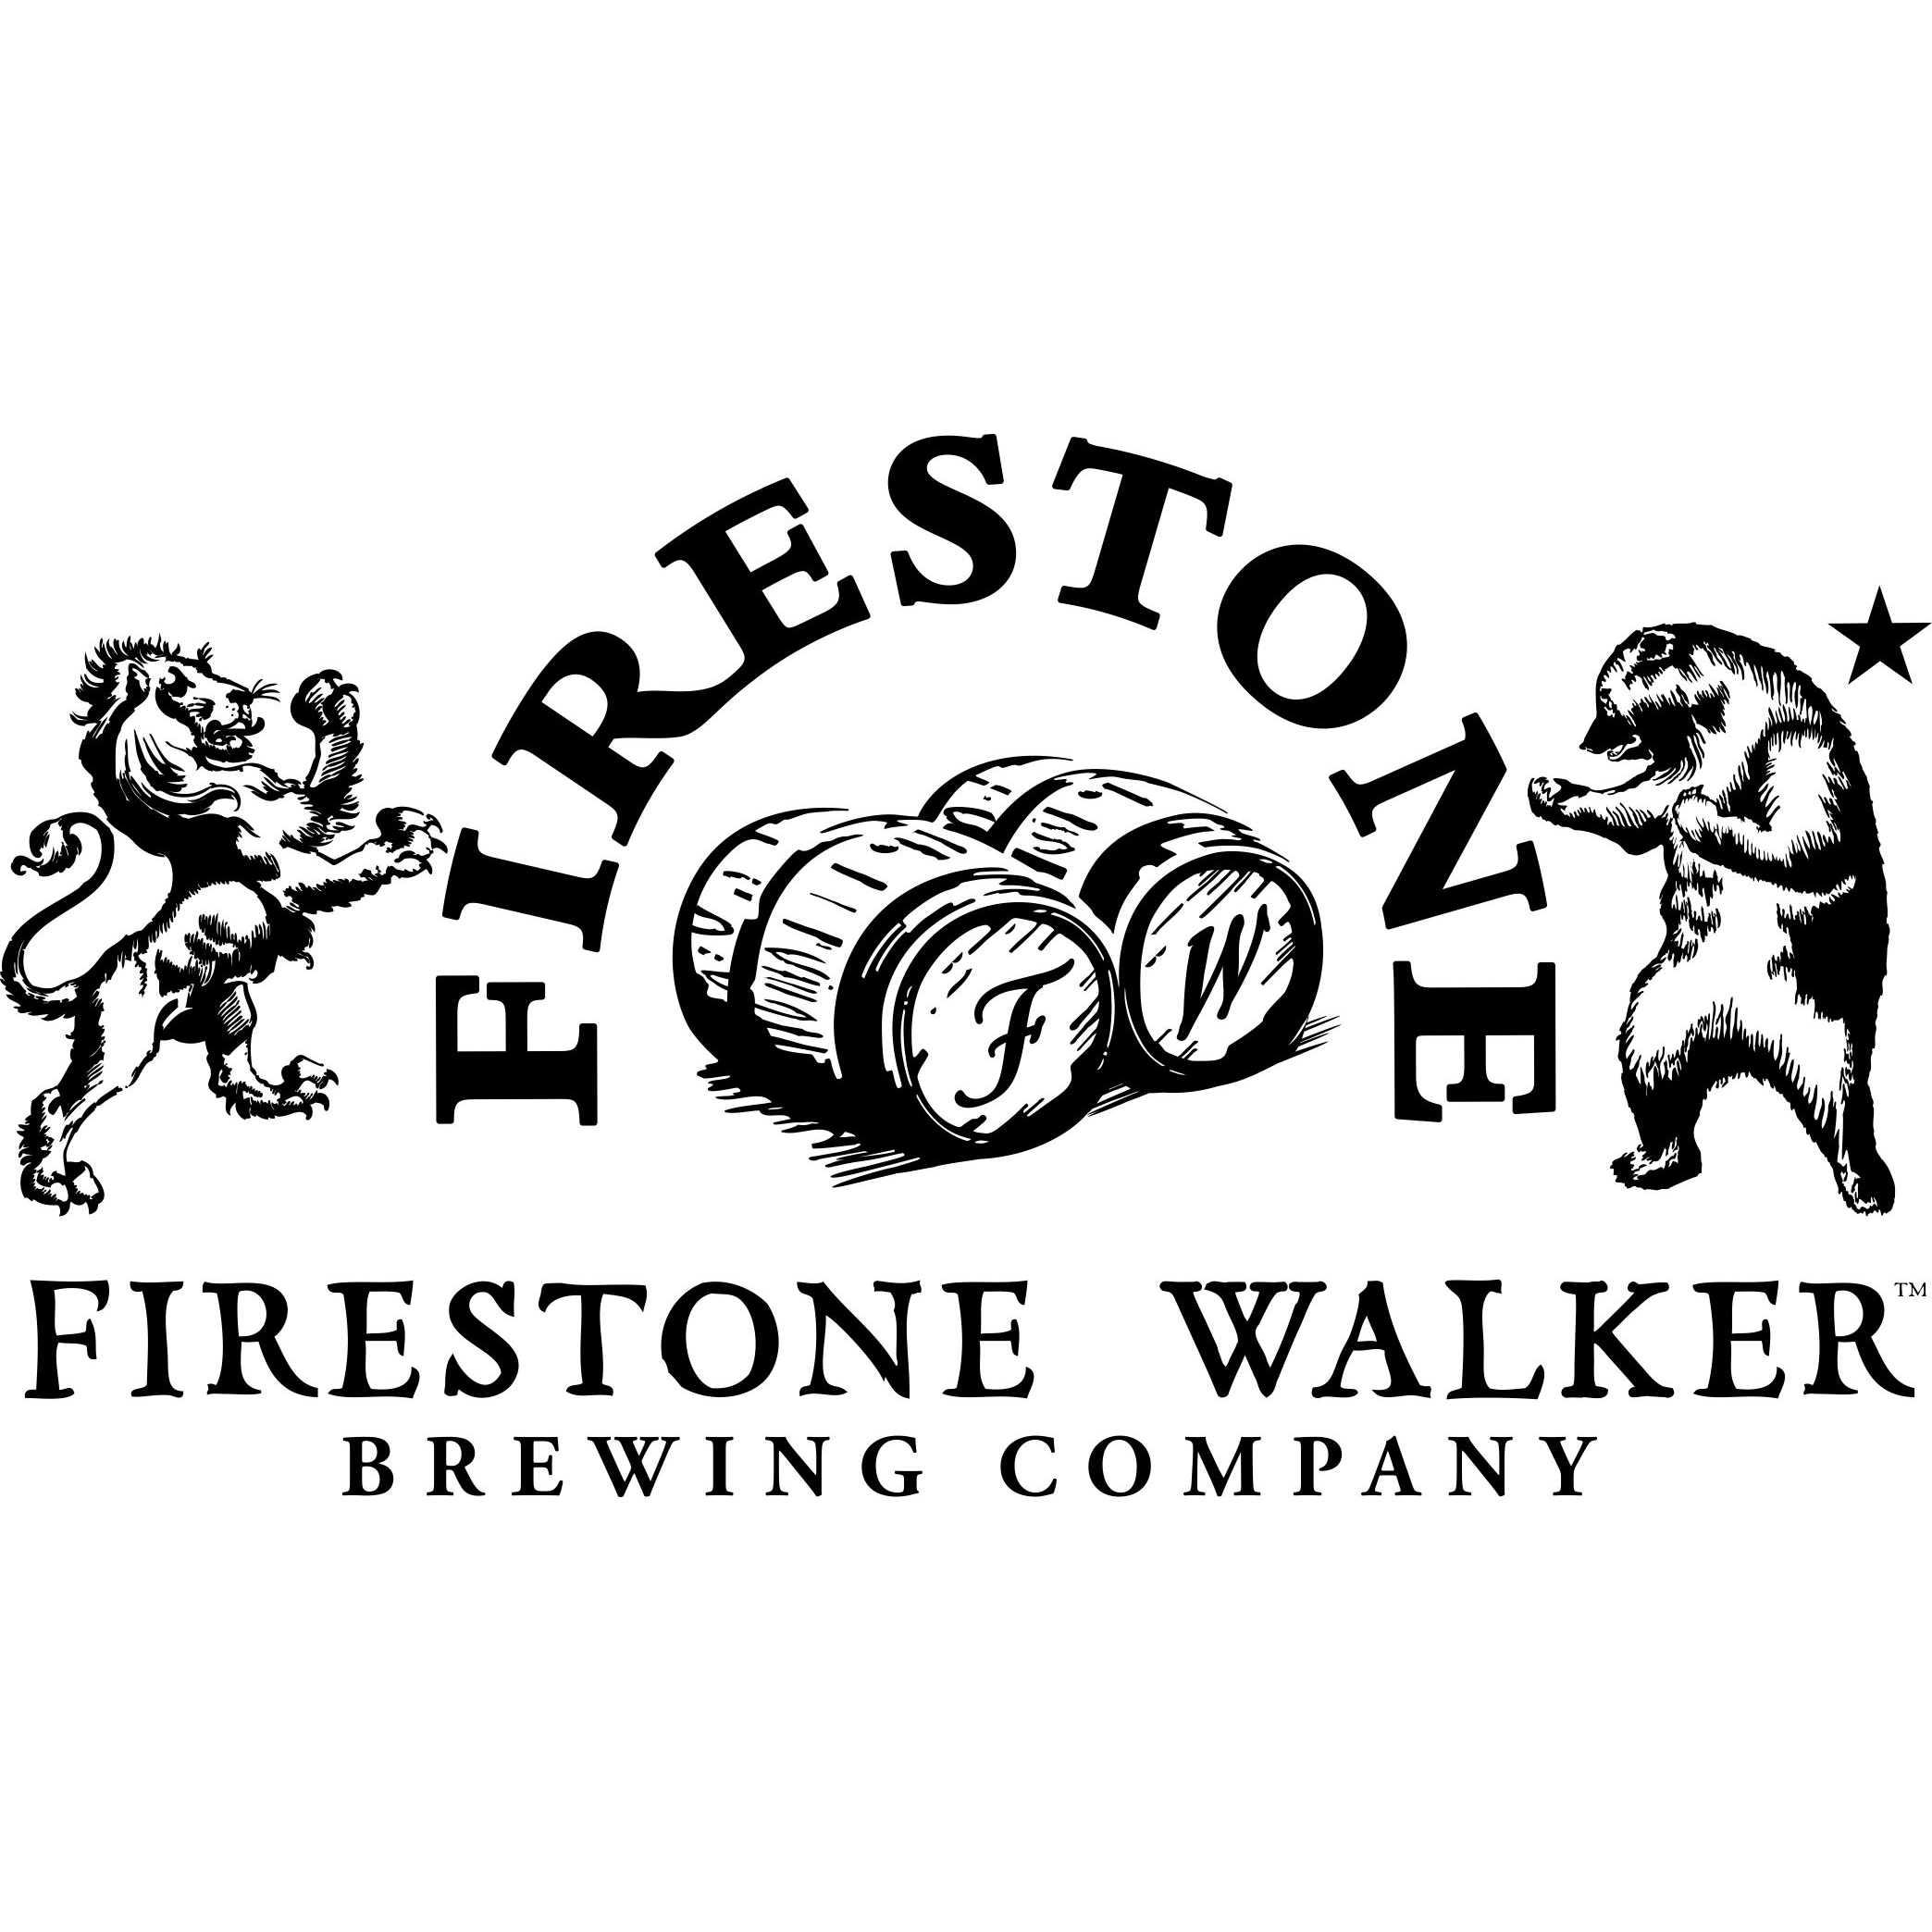 firestone-walker-logo.jpg